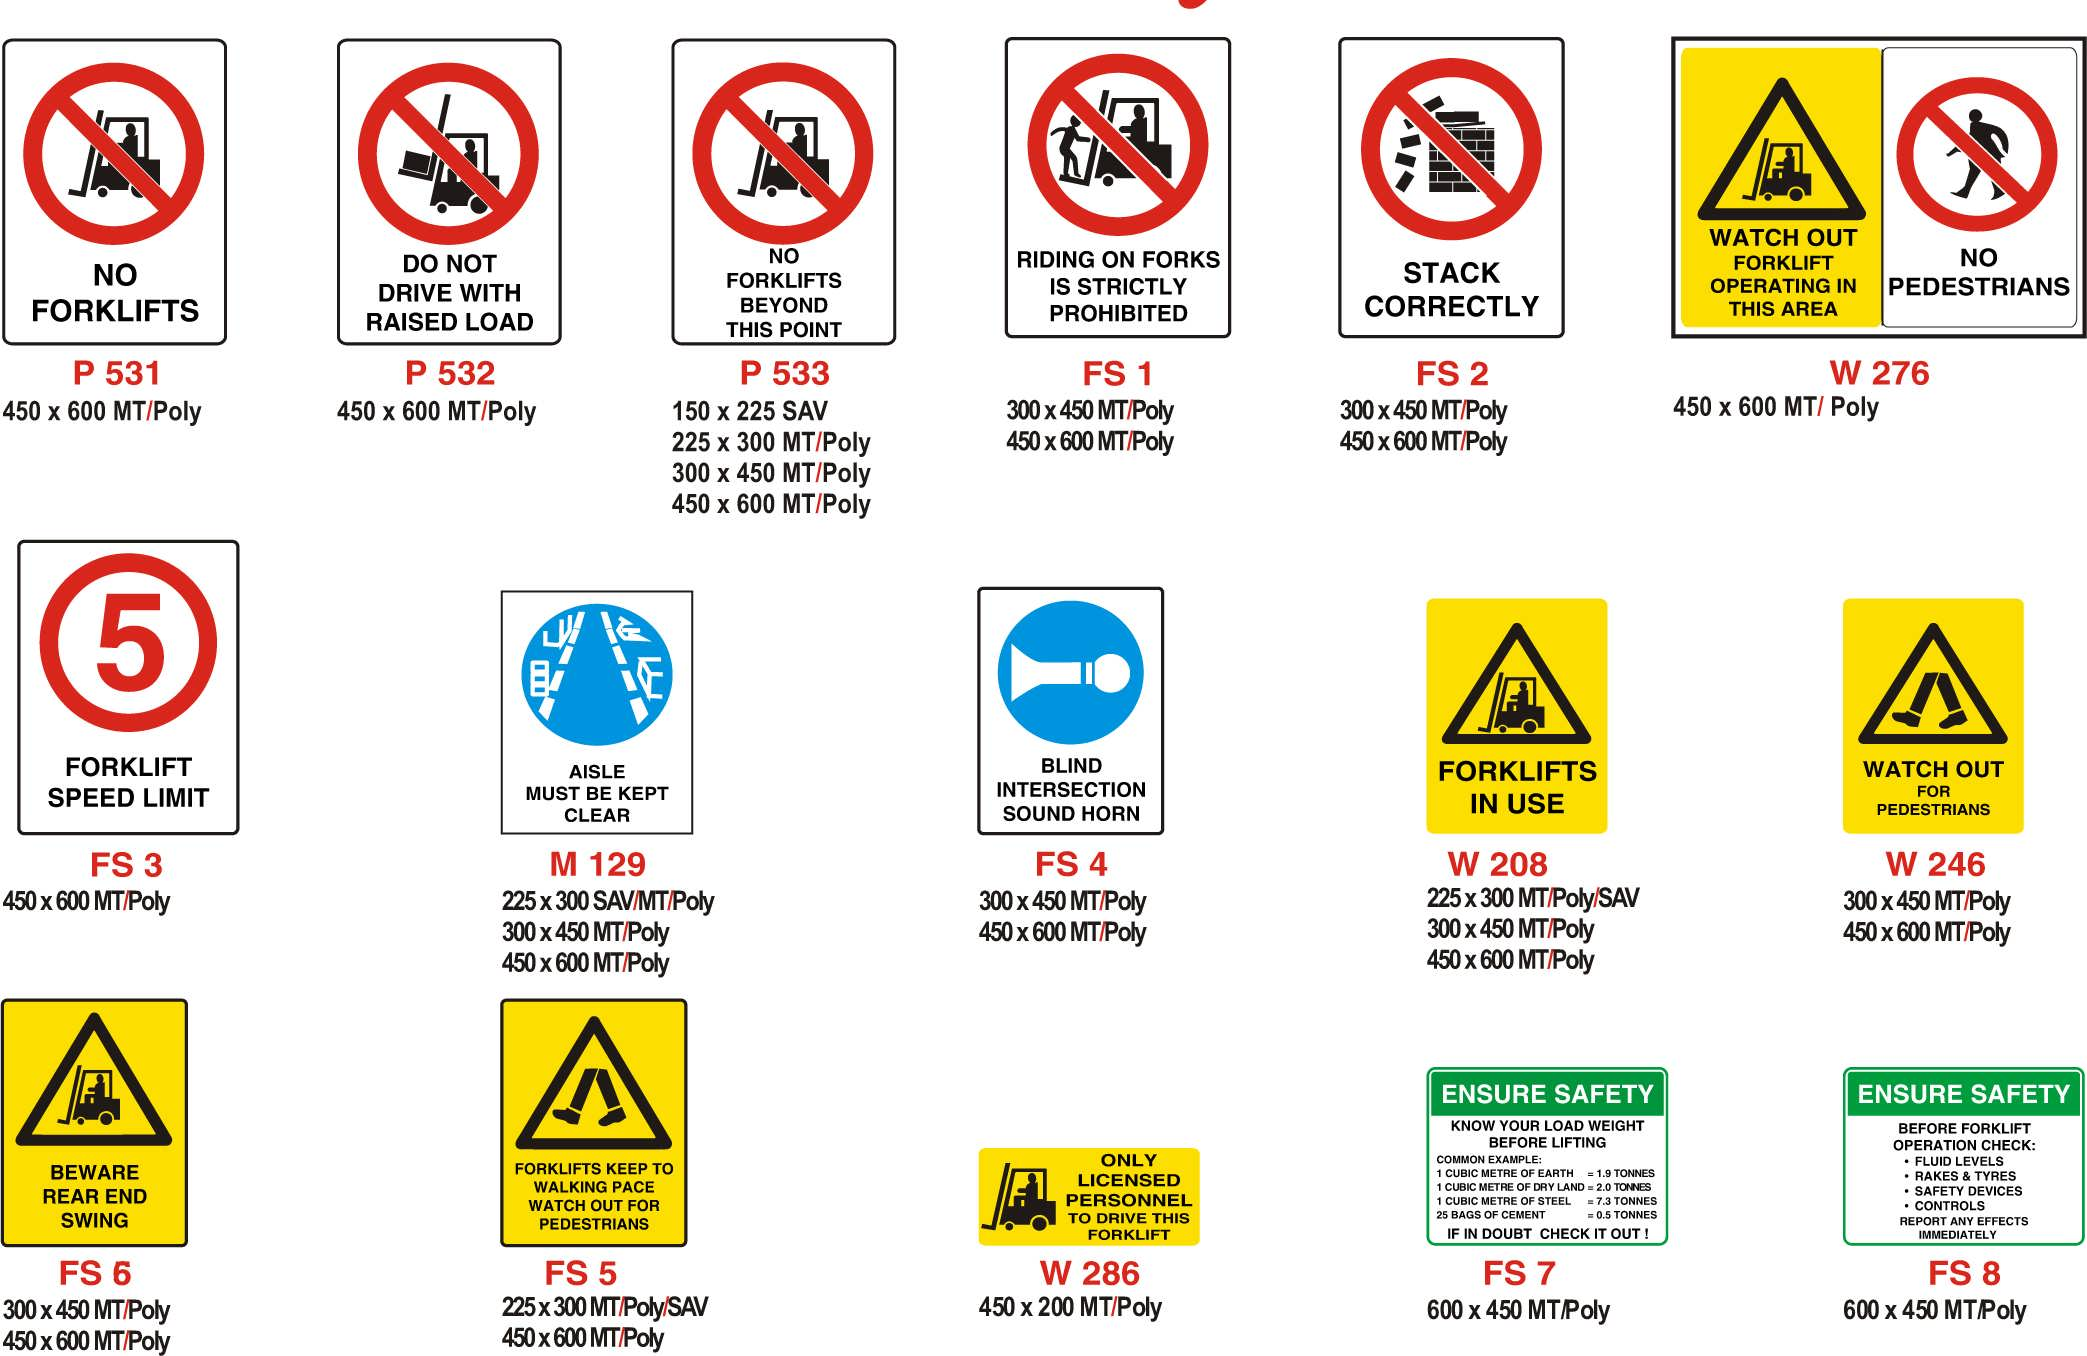 Forklift Safety Signs : Papillon Australia Pty. Ltd.